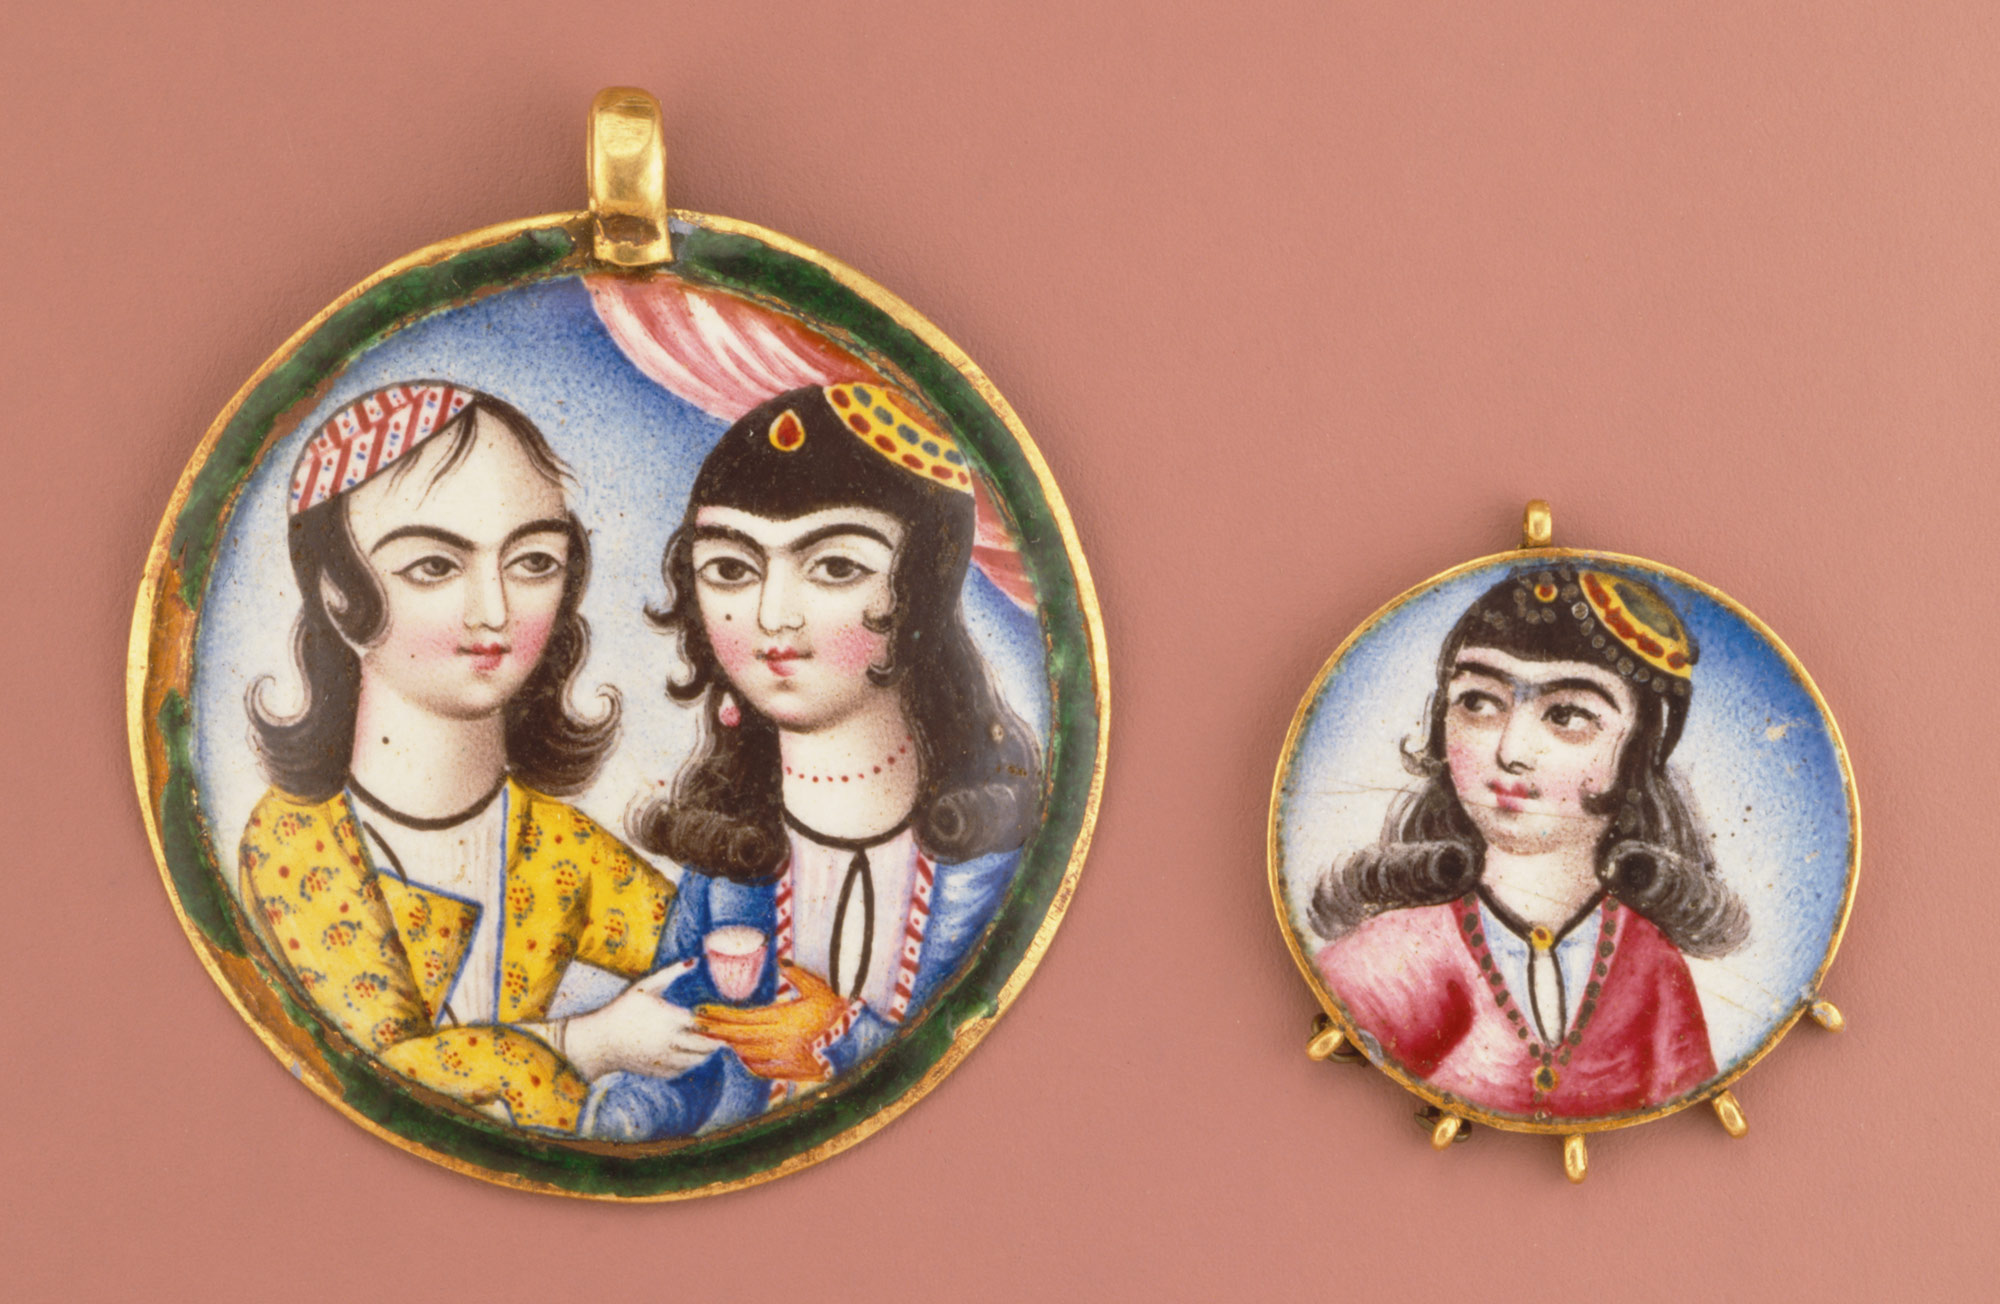 Portrait of a Girl in a Round Pendant